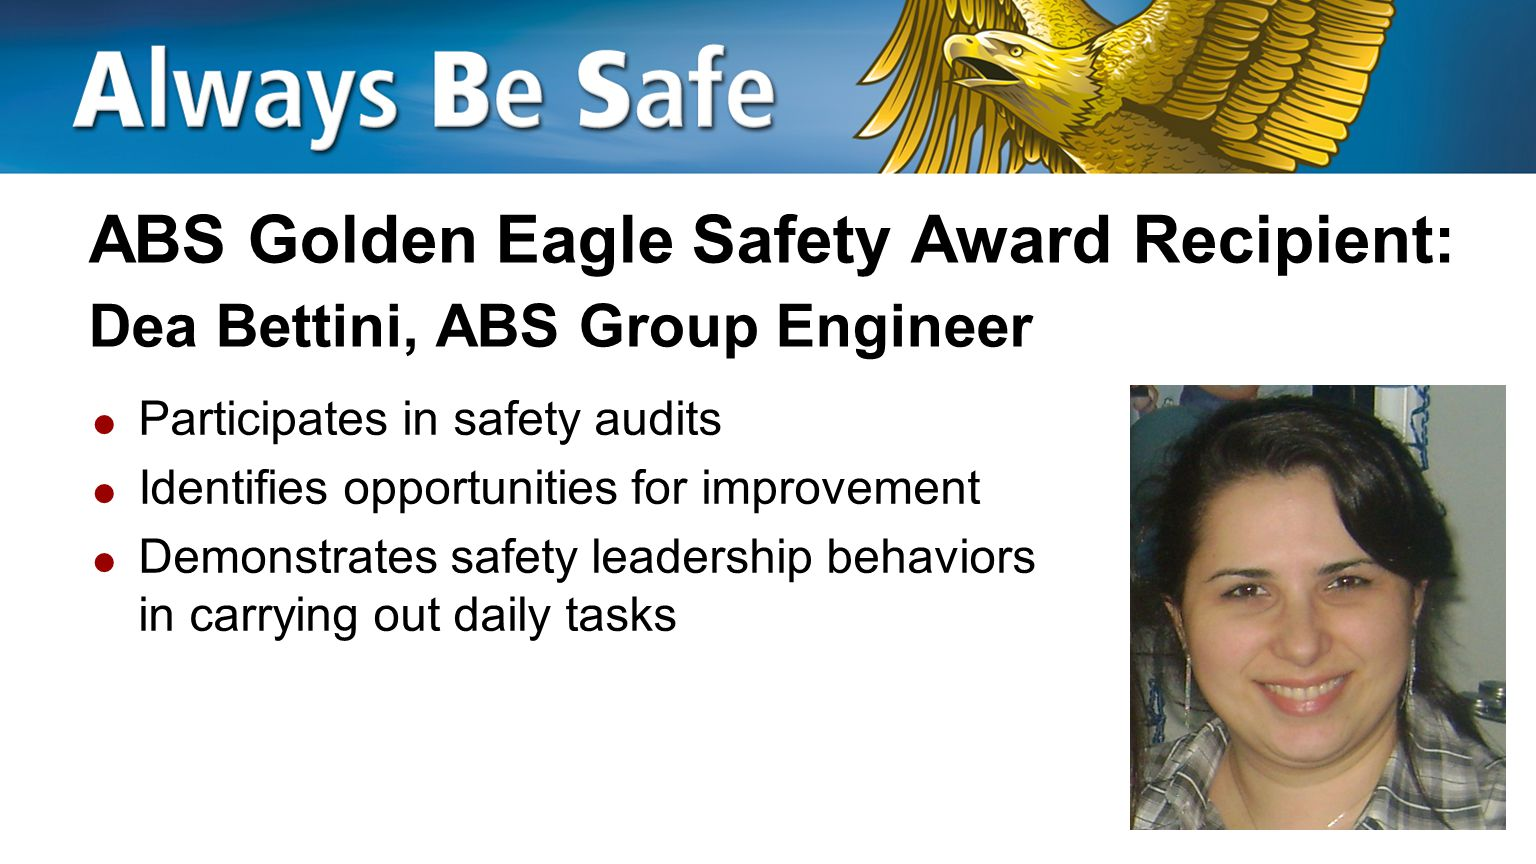 ABS Golden Eagle Safety Award Recipient: Dea Bettini, ABS Group Engineer